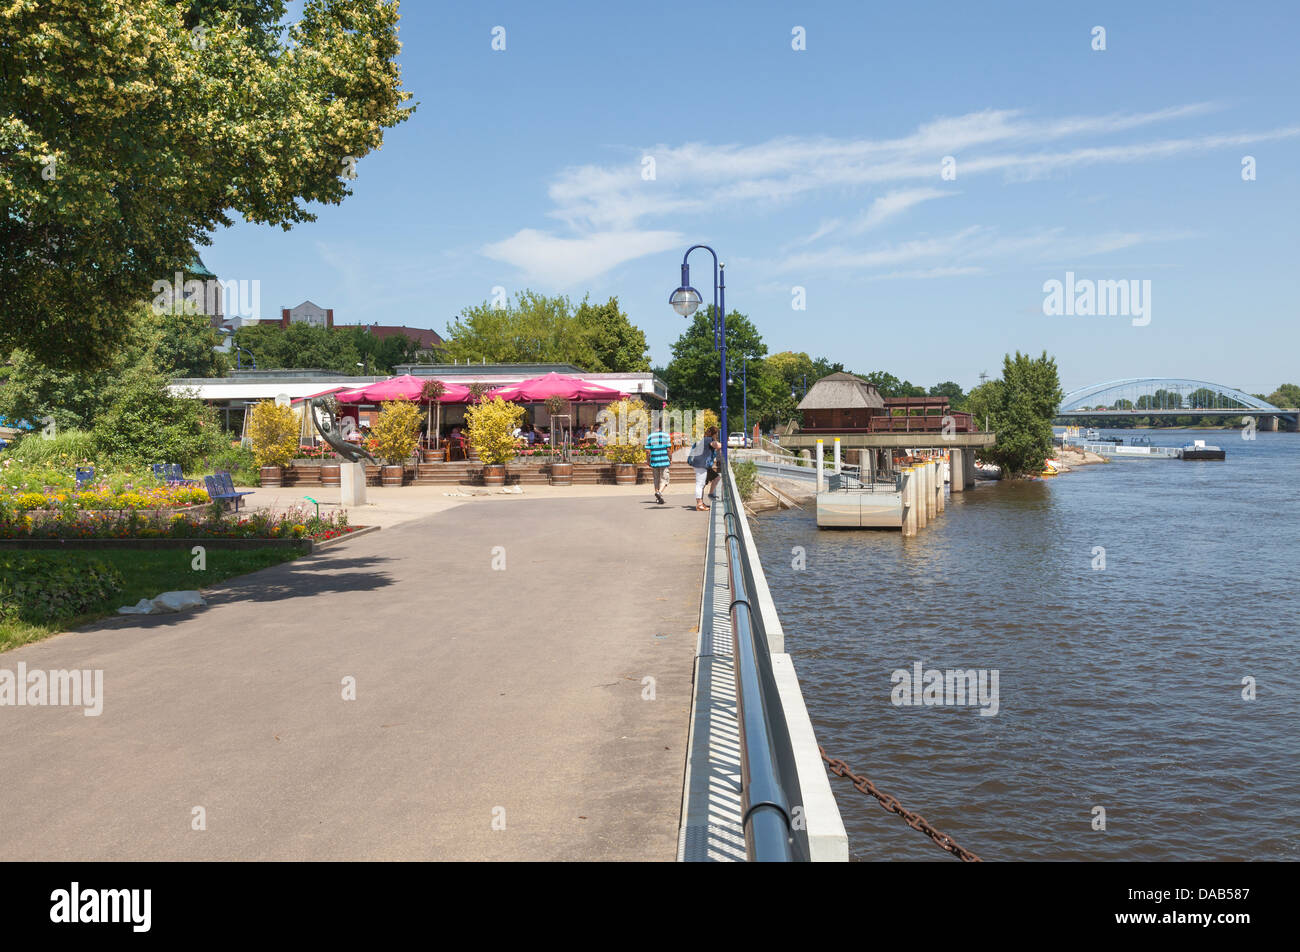 Elbufer Uferpromenade and River Elbe, Magdeburg, Saxony Anhalt, Germany Stock Photo